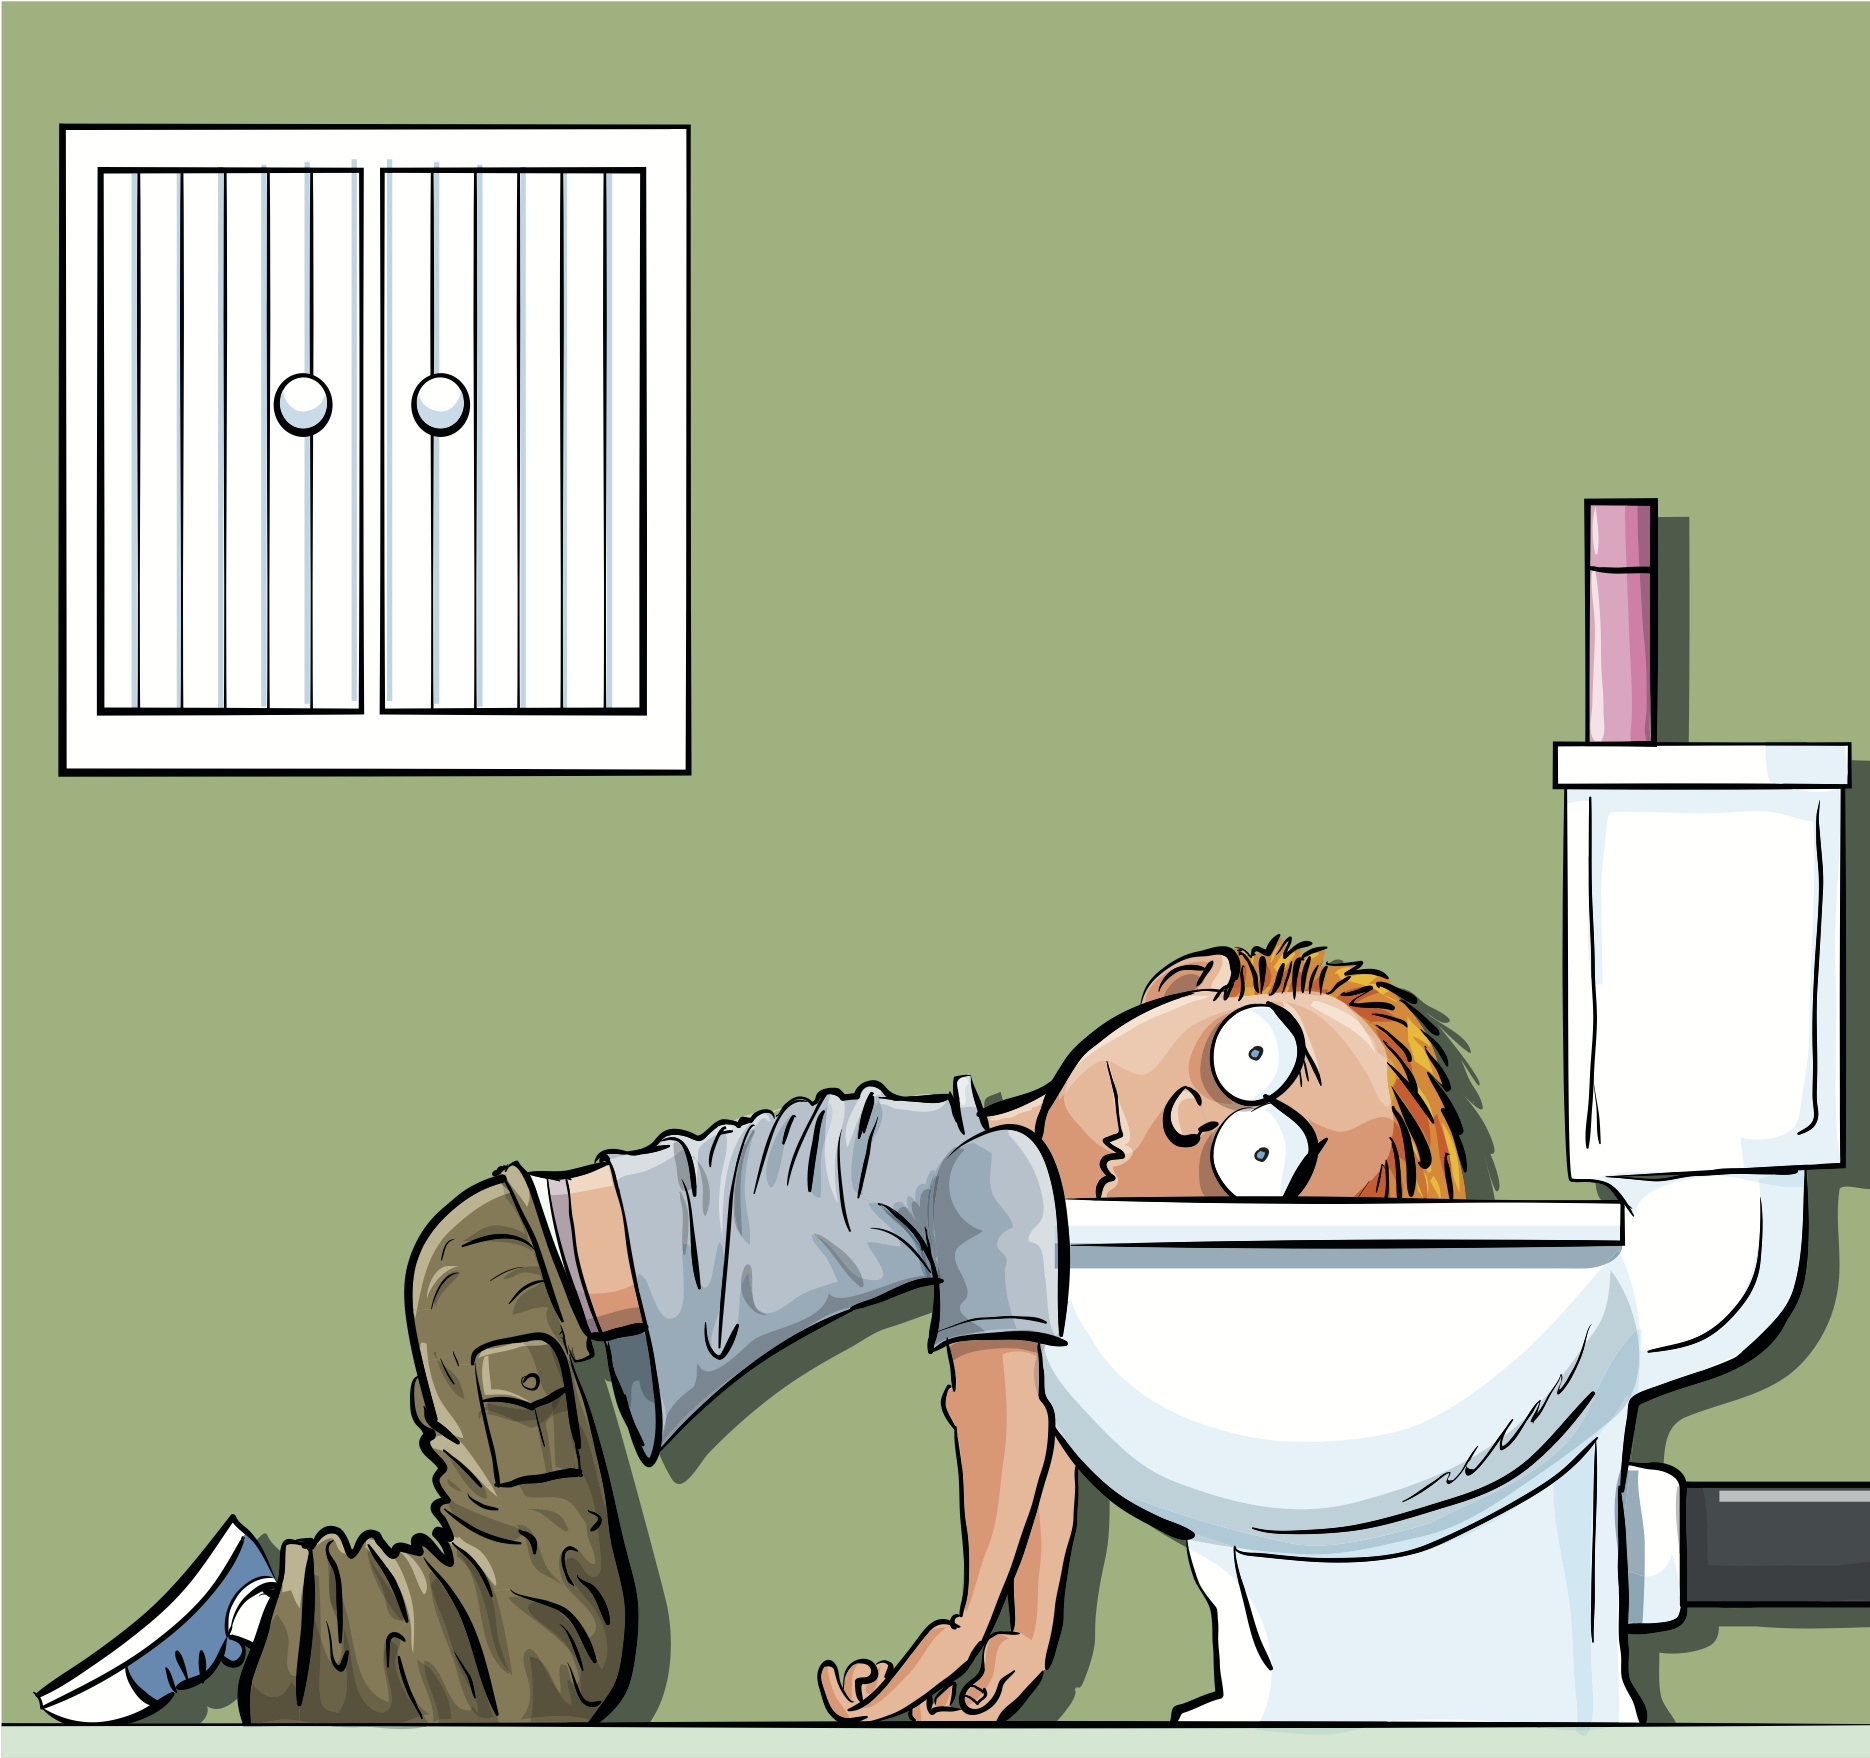 Vomiting, diarrhea, fever in the adult - what does it mean